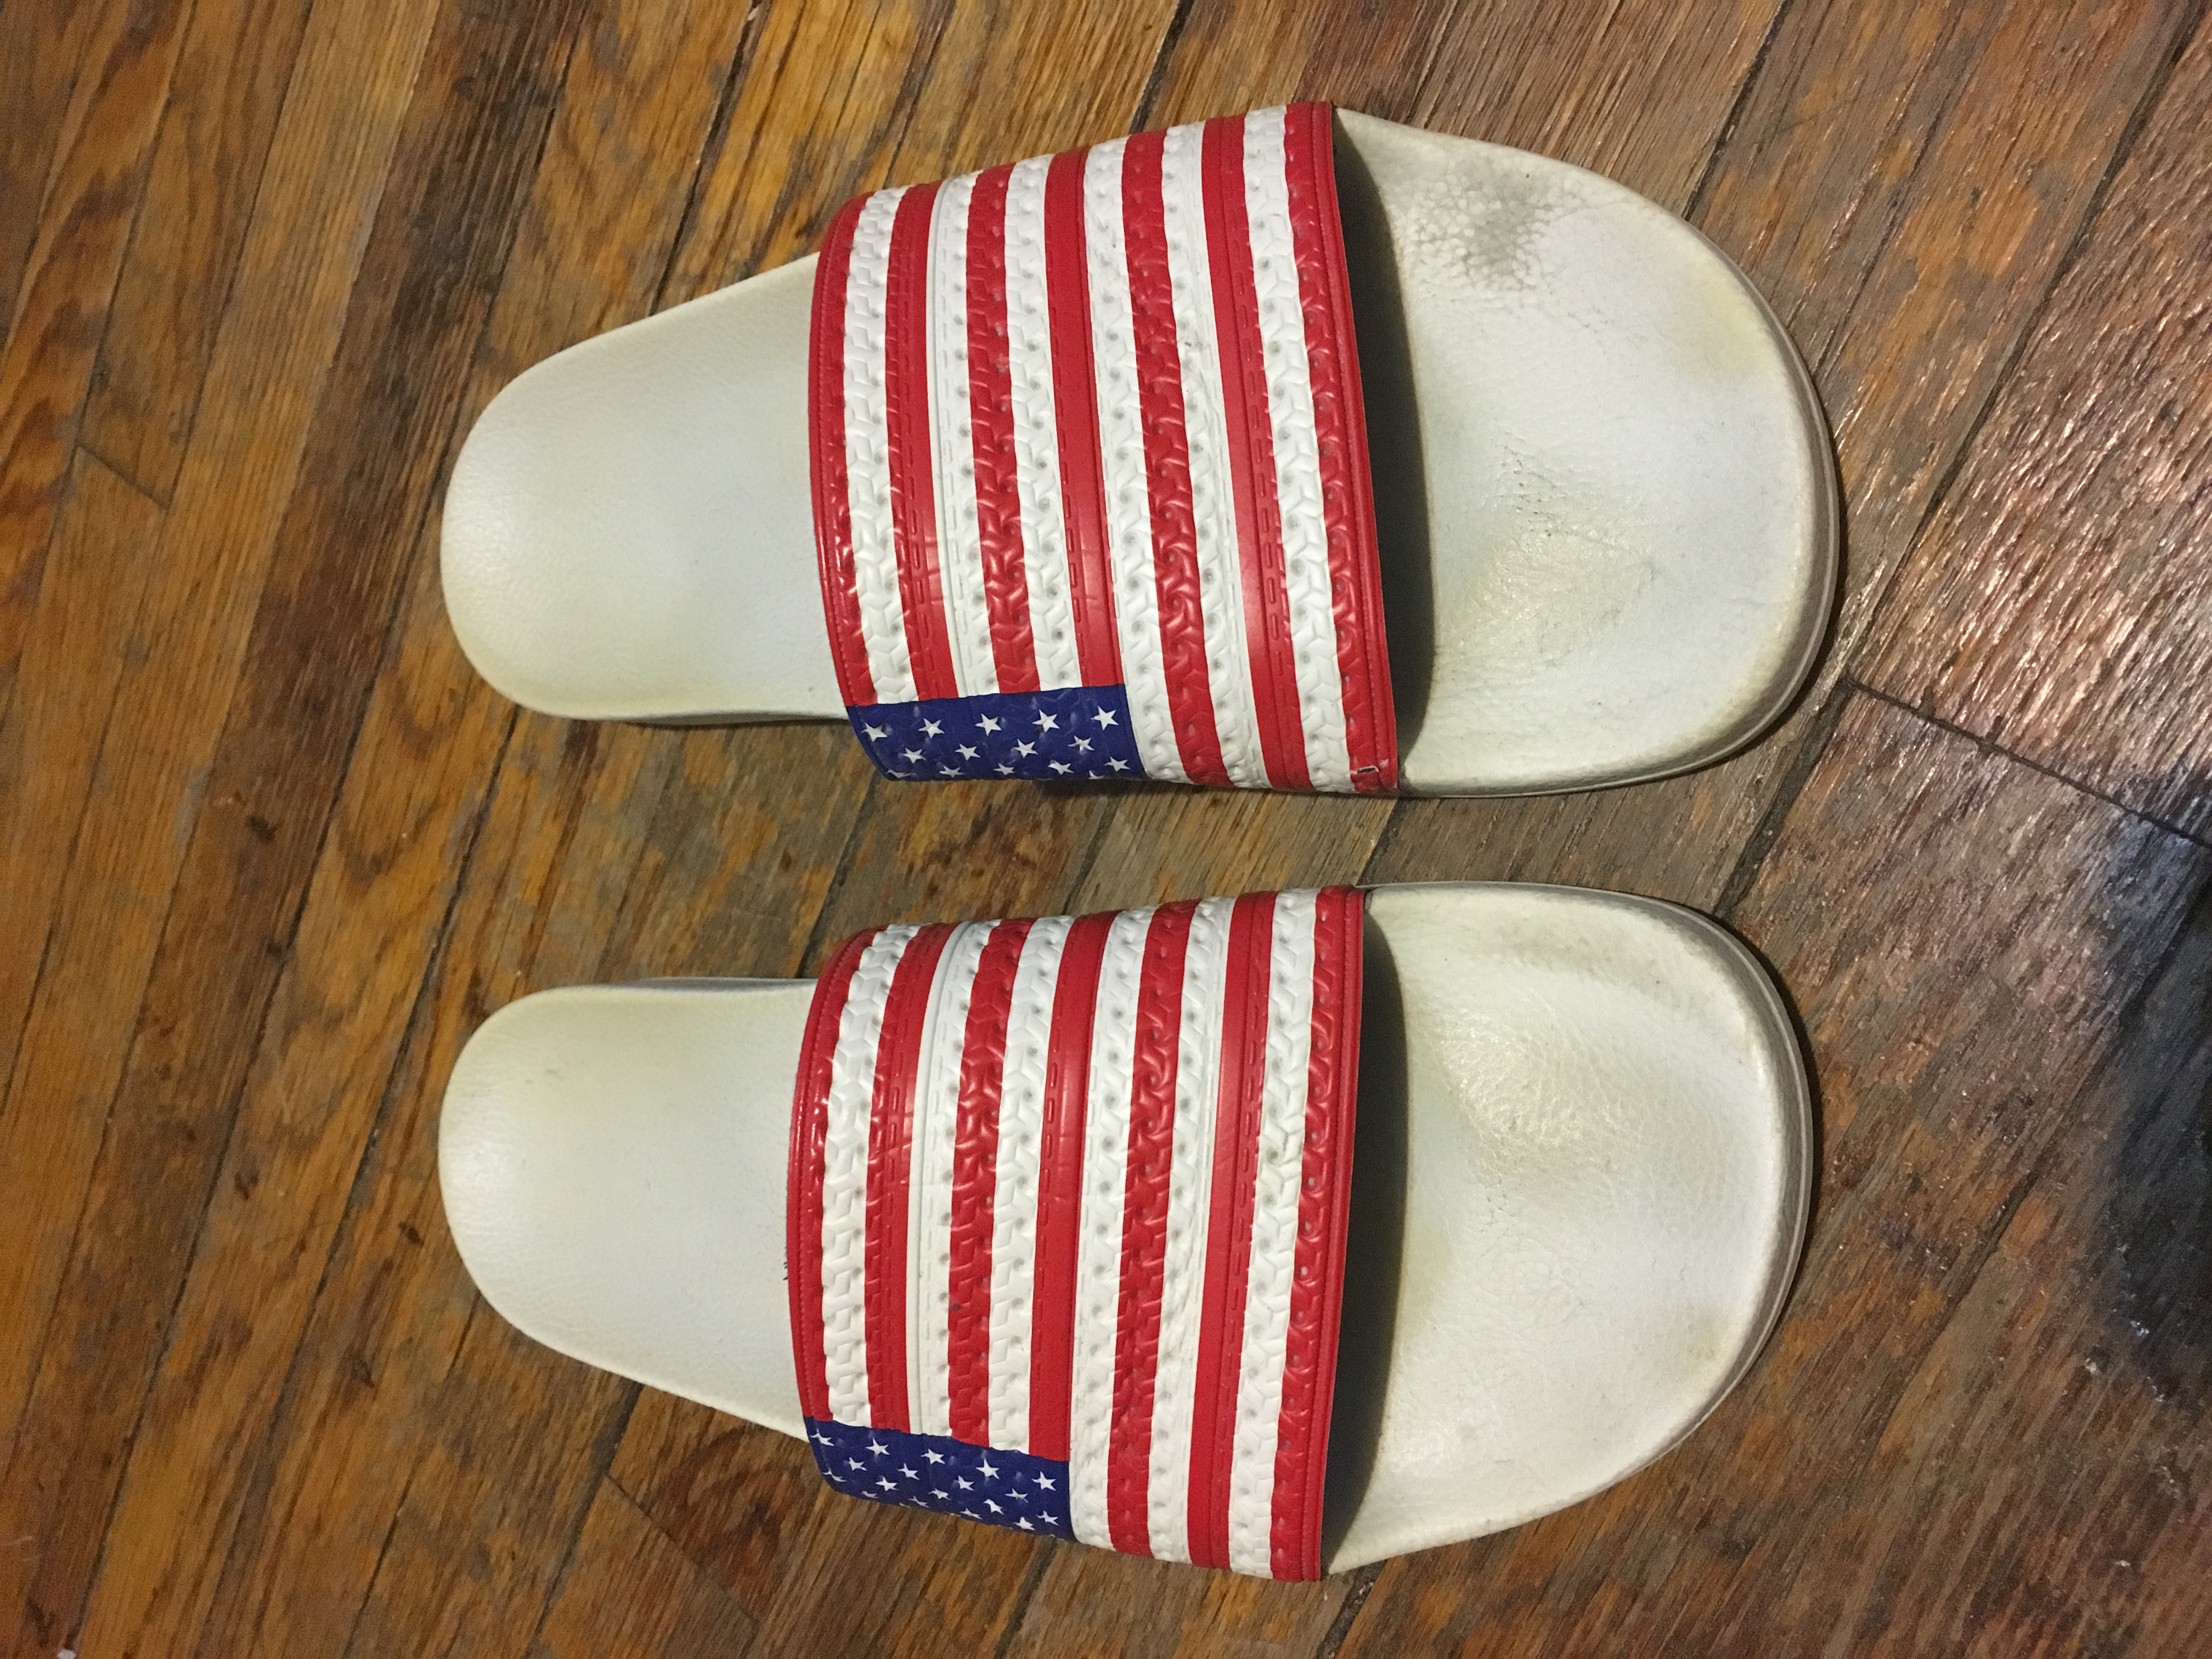 6322b559325e Adidas American flag slides Size 13 - Sandals for Sale - Grailed